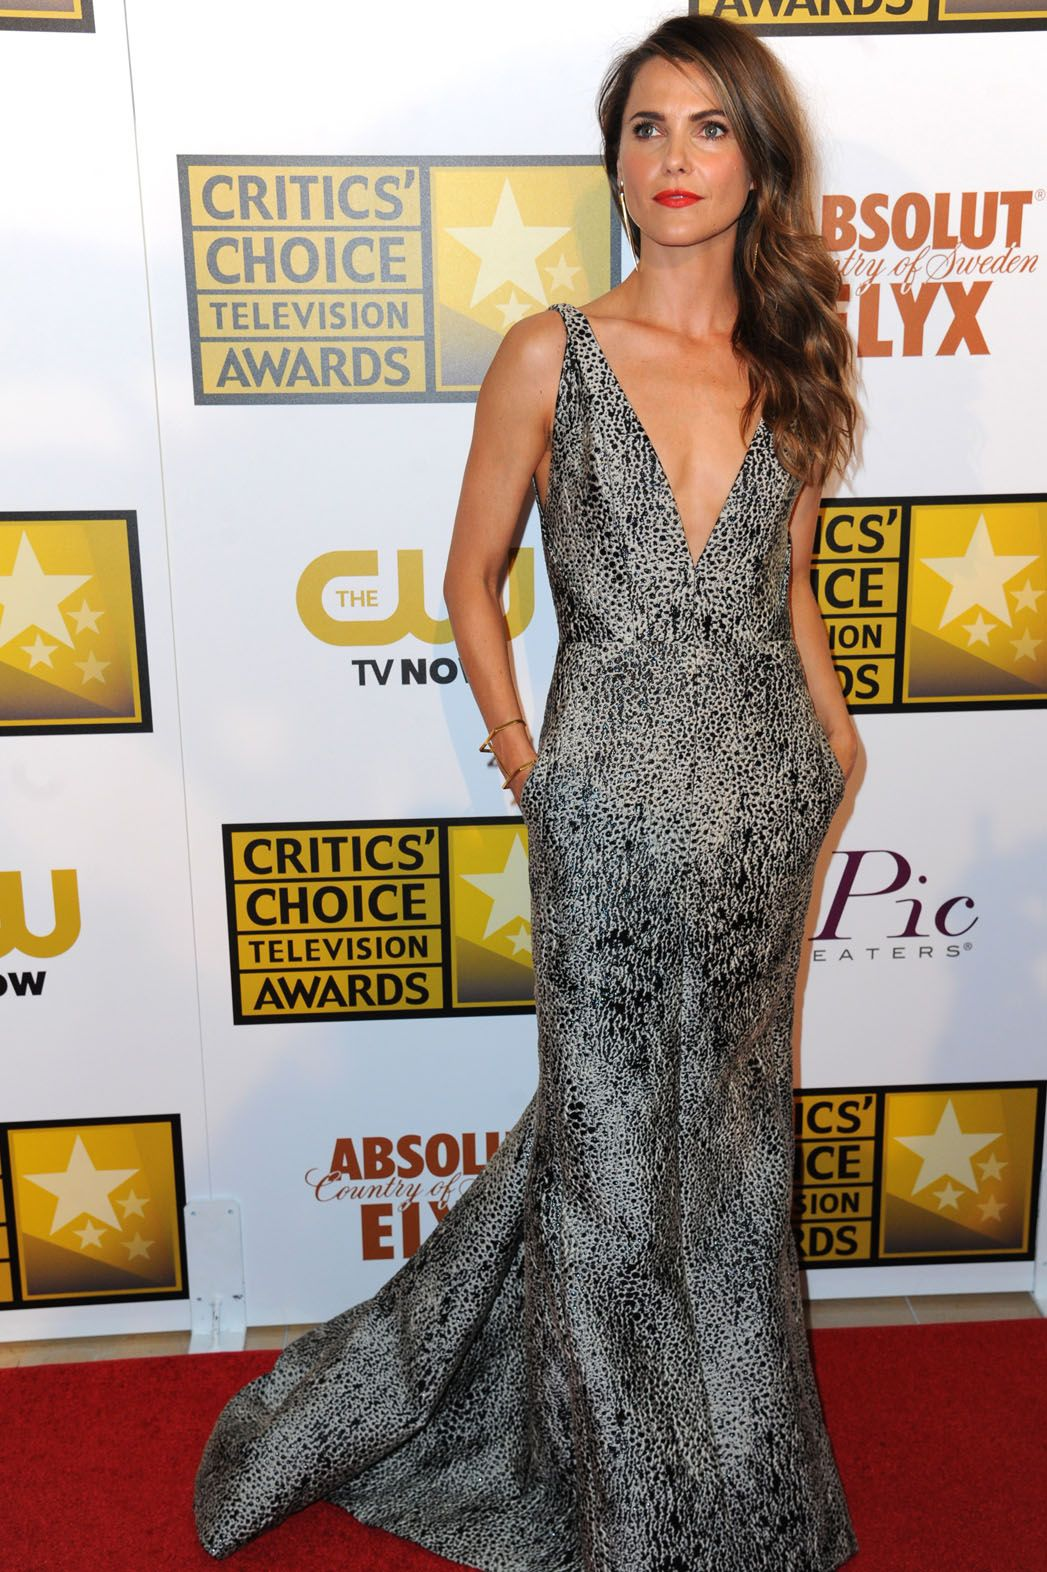 To acquire Rossum emmy goes gray j mendel picture trends